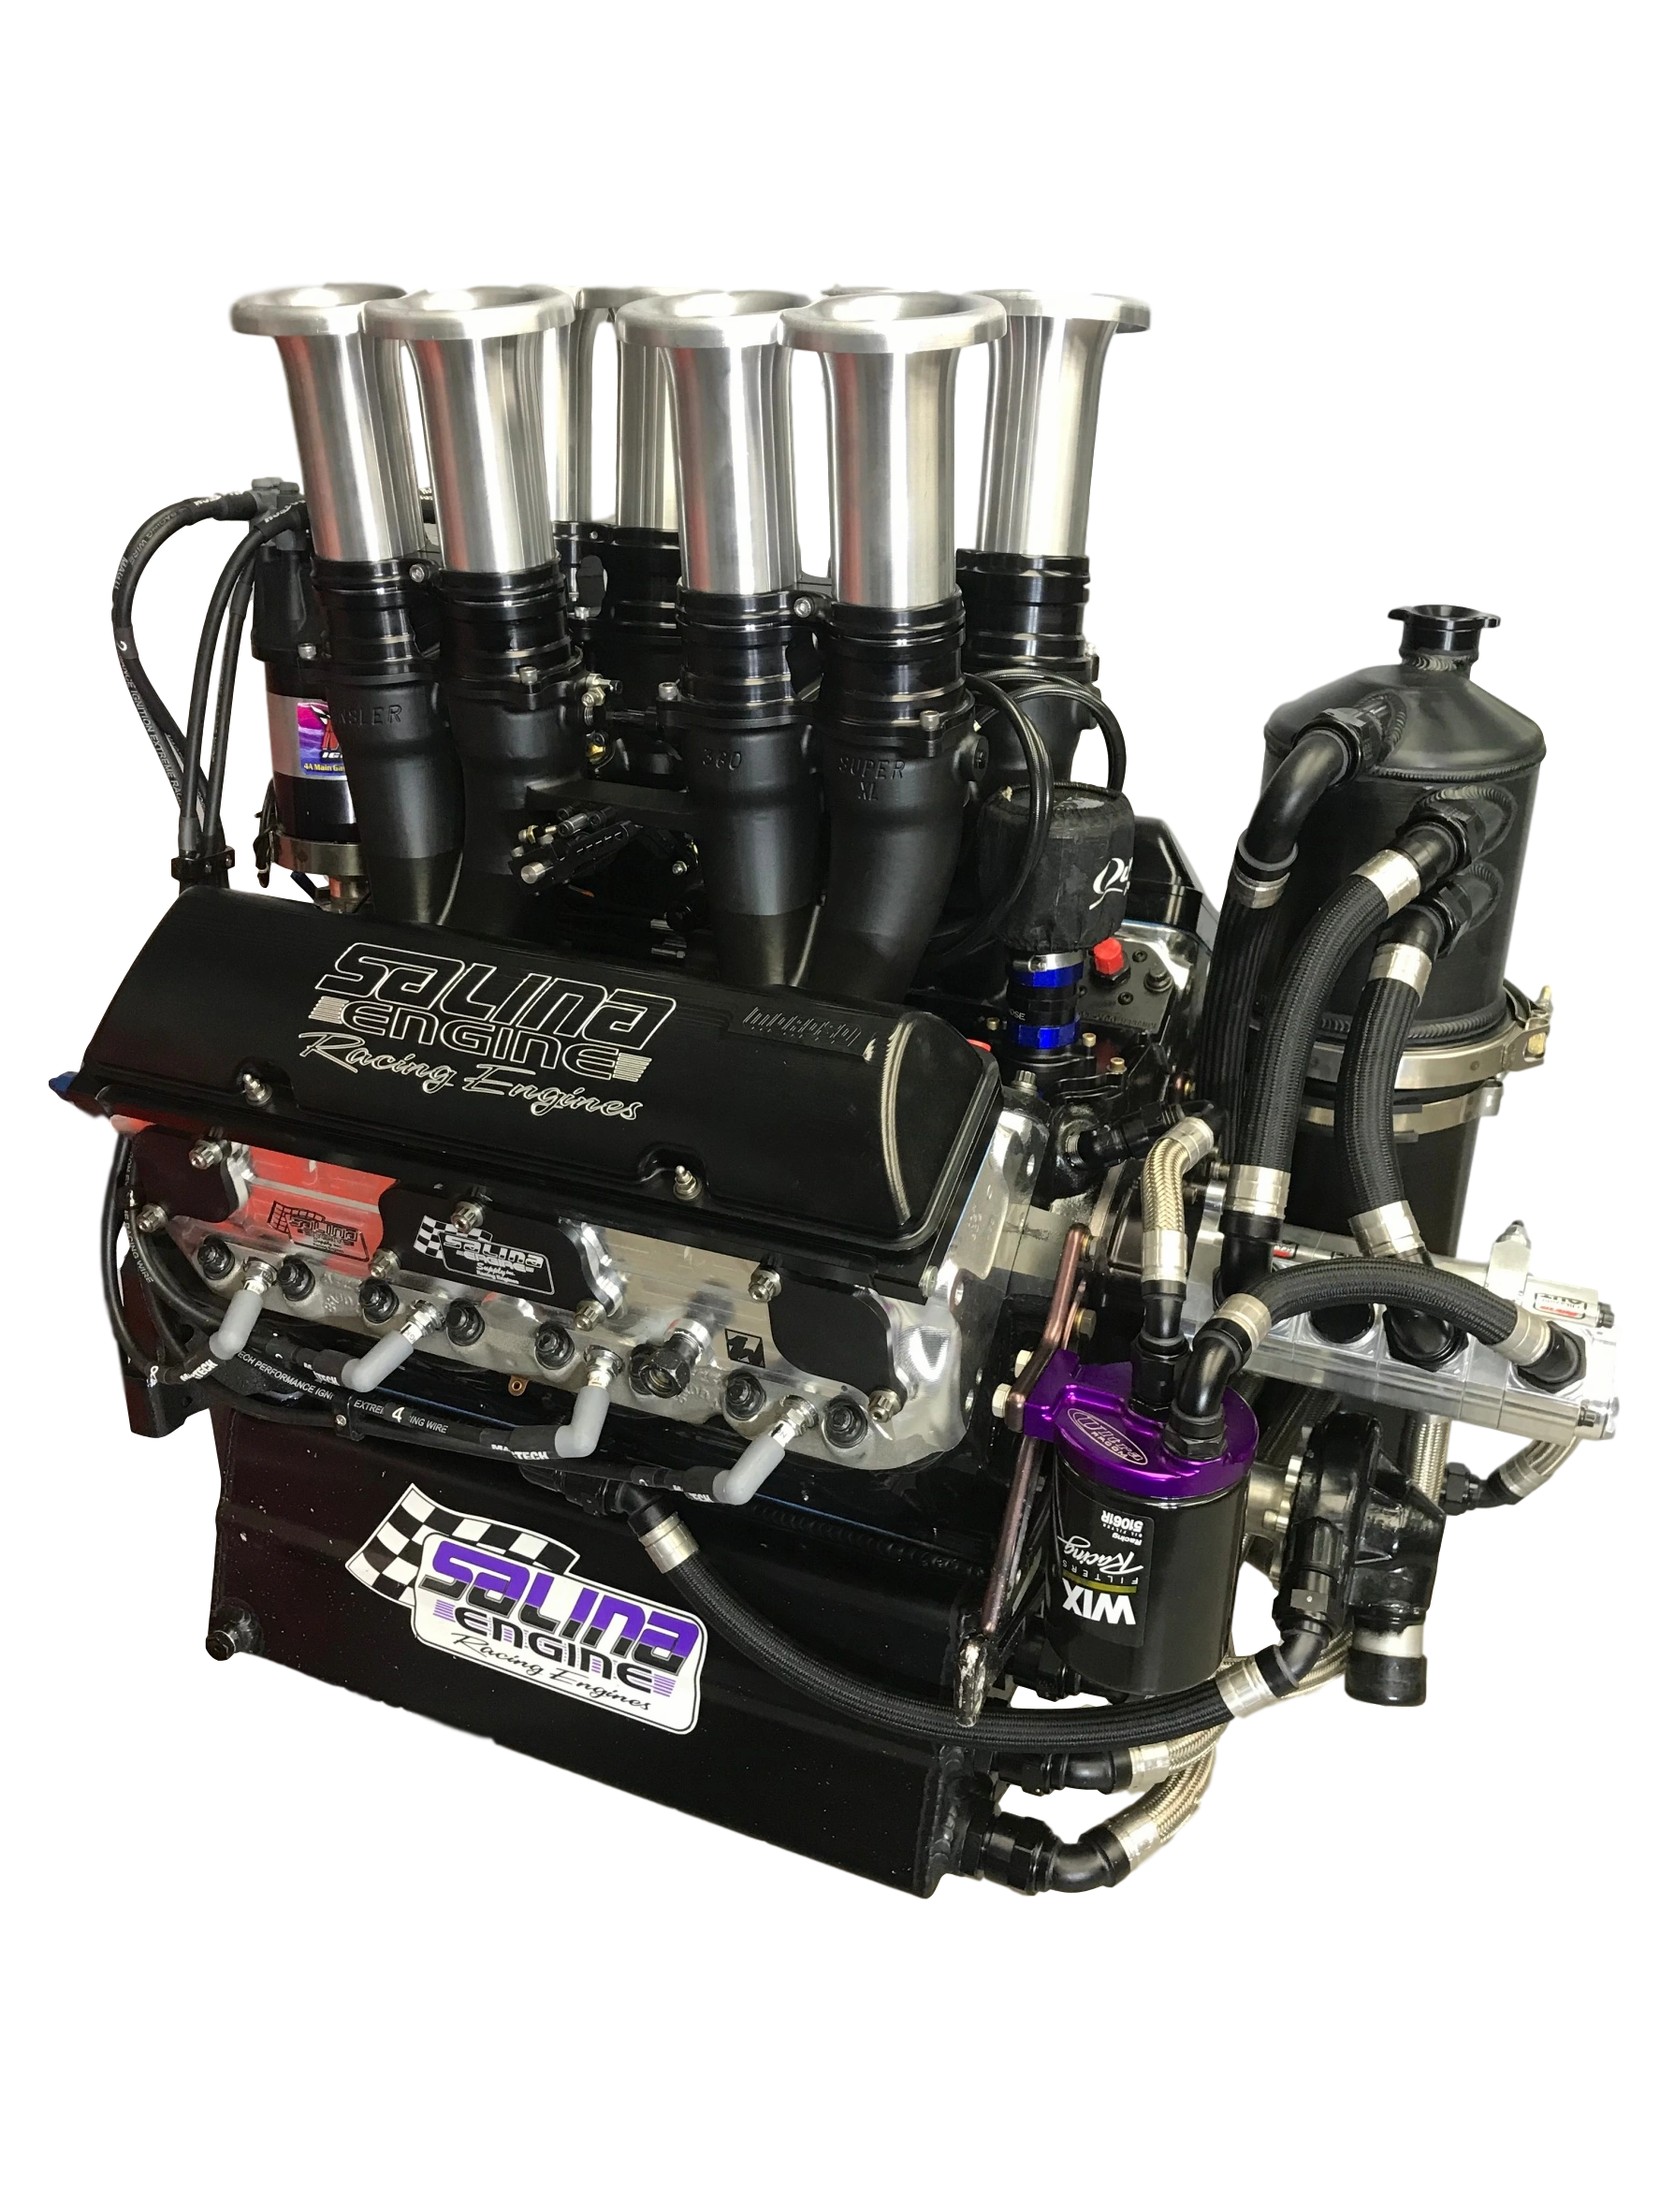 Salina Engine, Sprint Car, sprintcar, late model,  drag race,  racing engine, world of outlaws, ascs